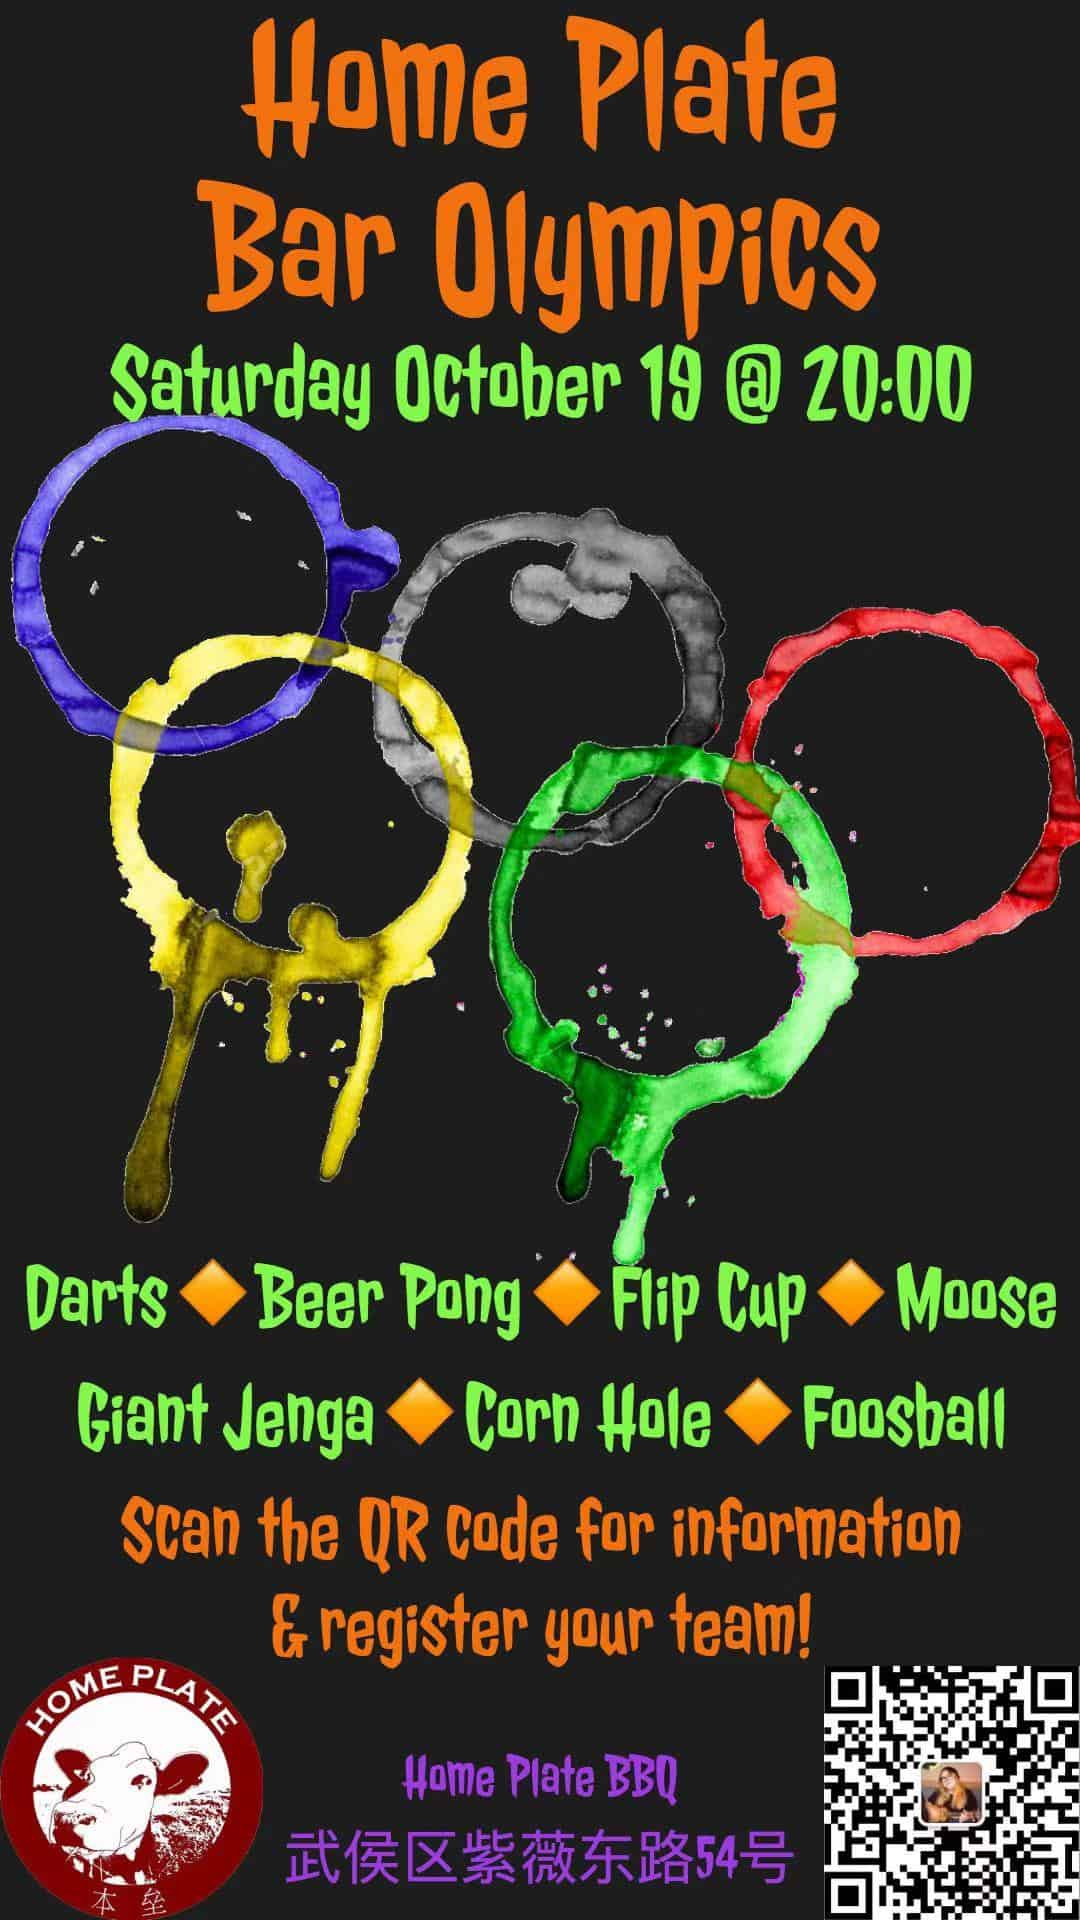 October 19: Home Plate Bar Olympics